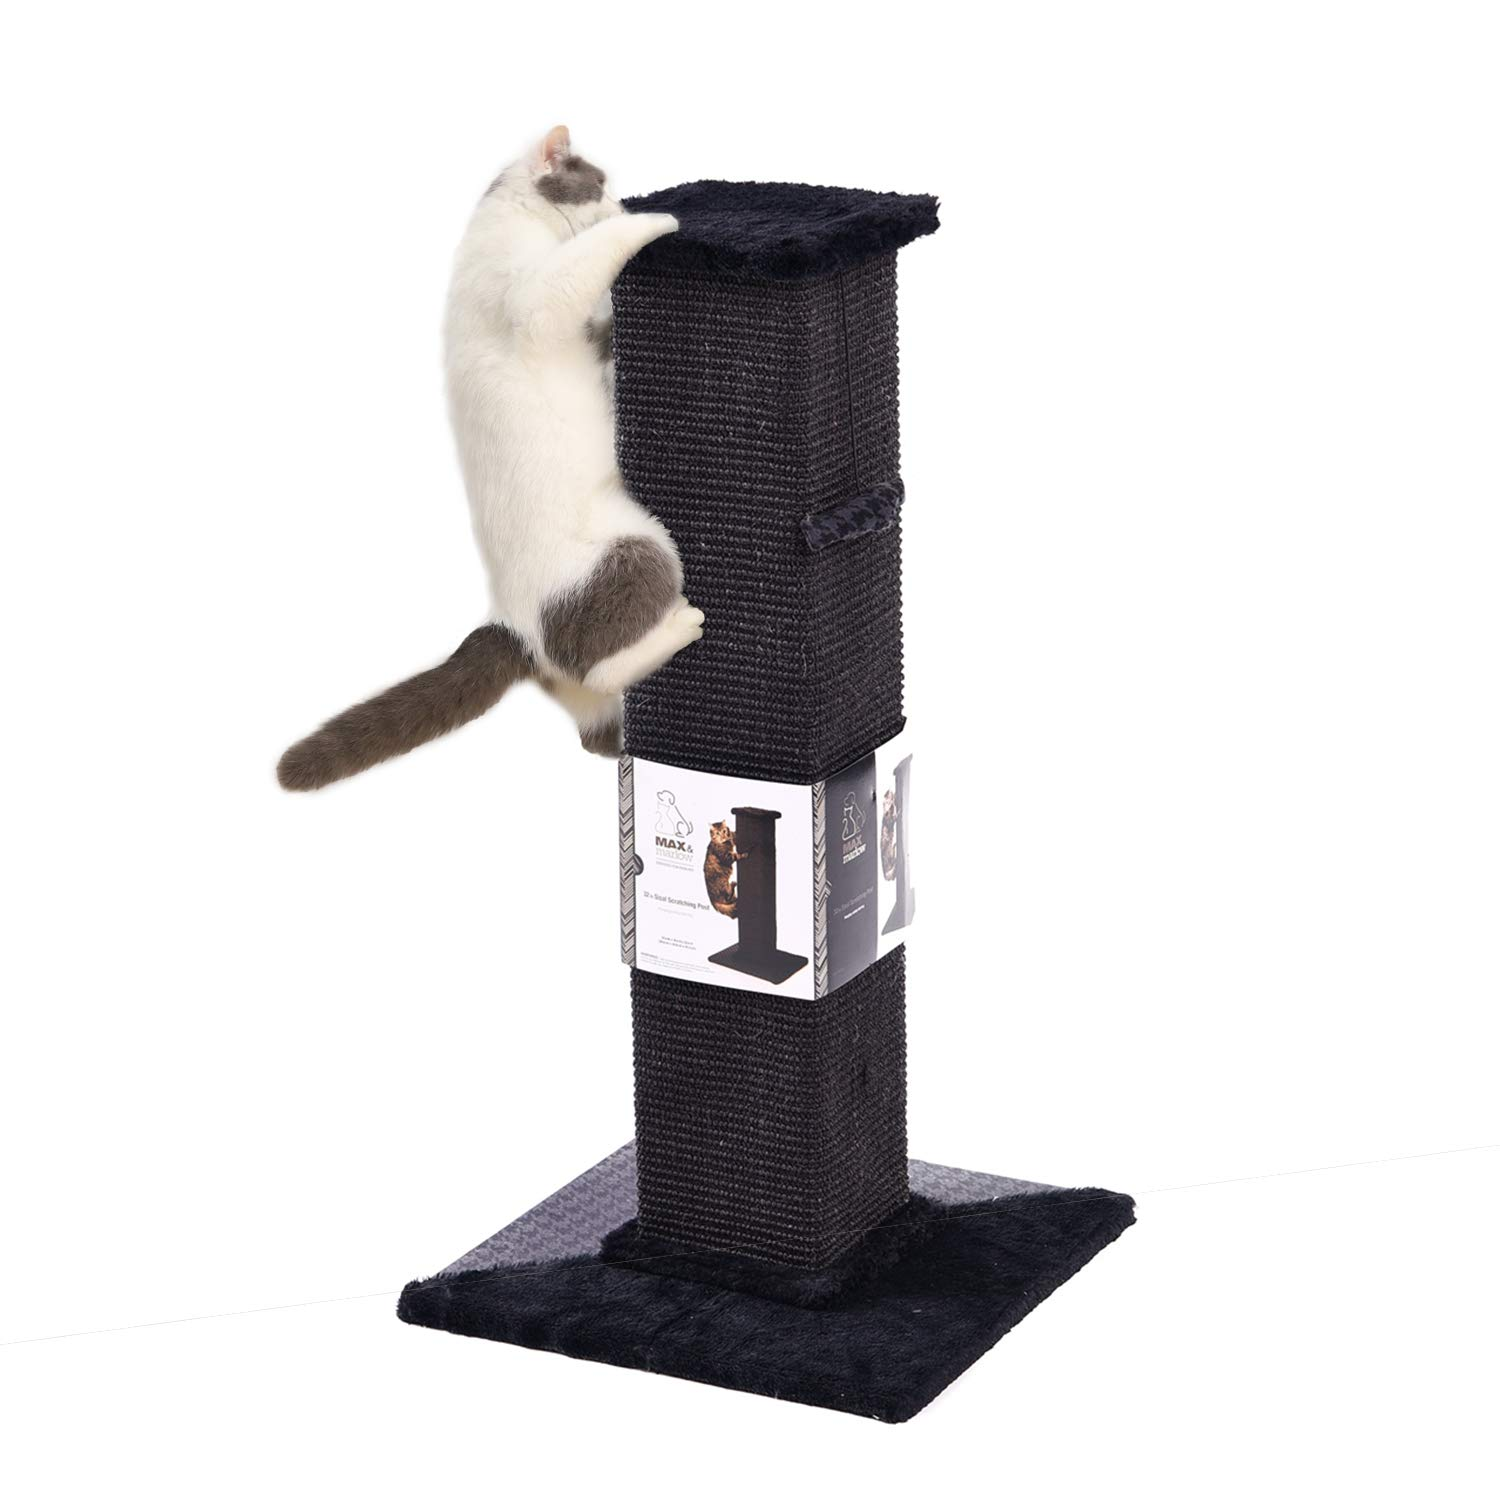 PAWZ Road 32'' Cats Ultimate Scratching Post by PAWZ Road (Image #1)